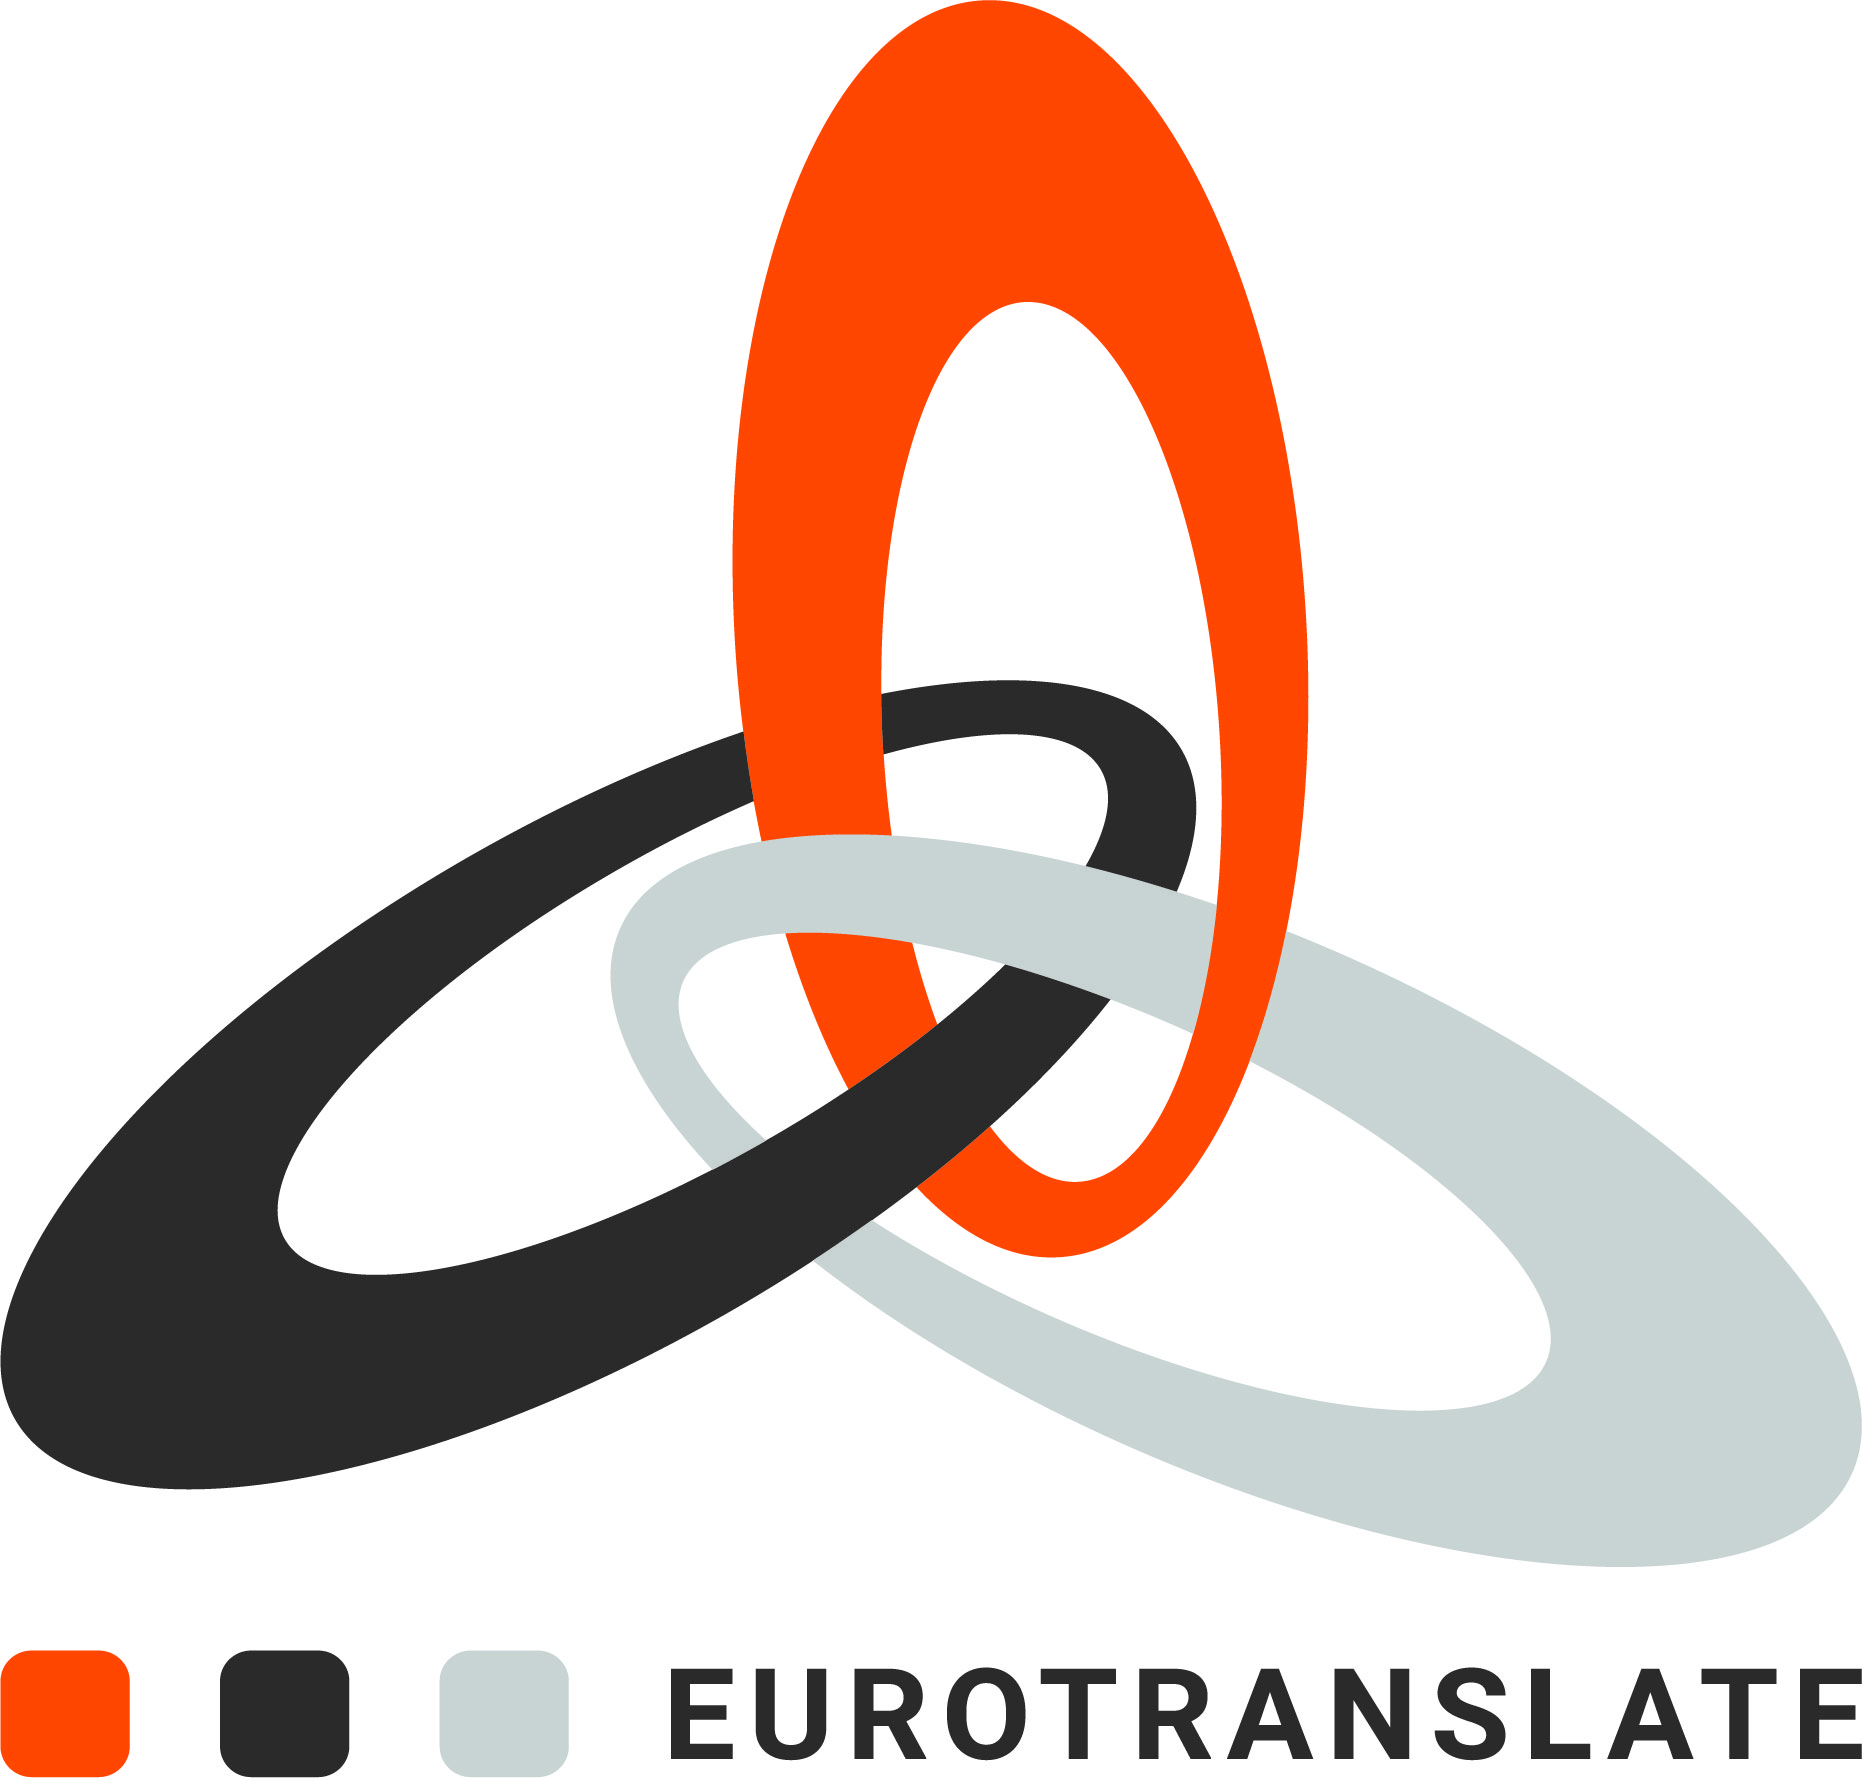 Eurotranslate